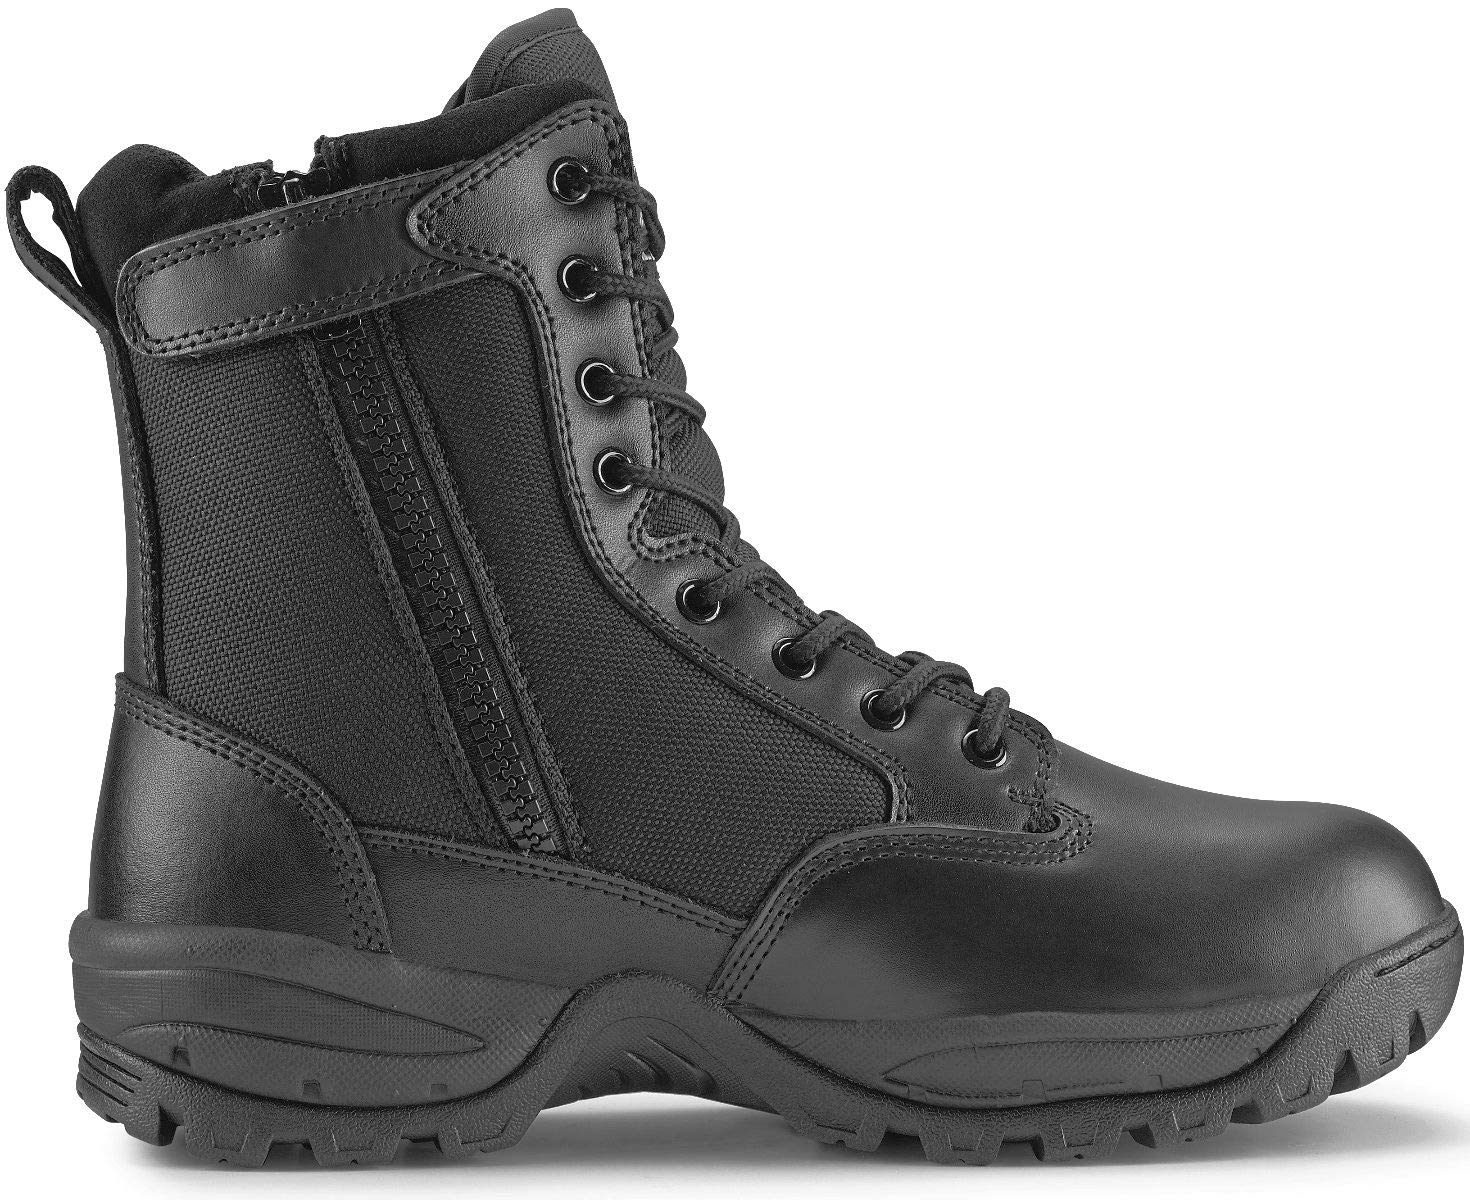 Maelstrom Men's TAC FORCE 8 Inch Military Tactical Duty Work Boot with Zipper, Black, 9 M US